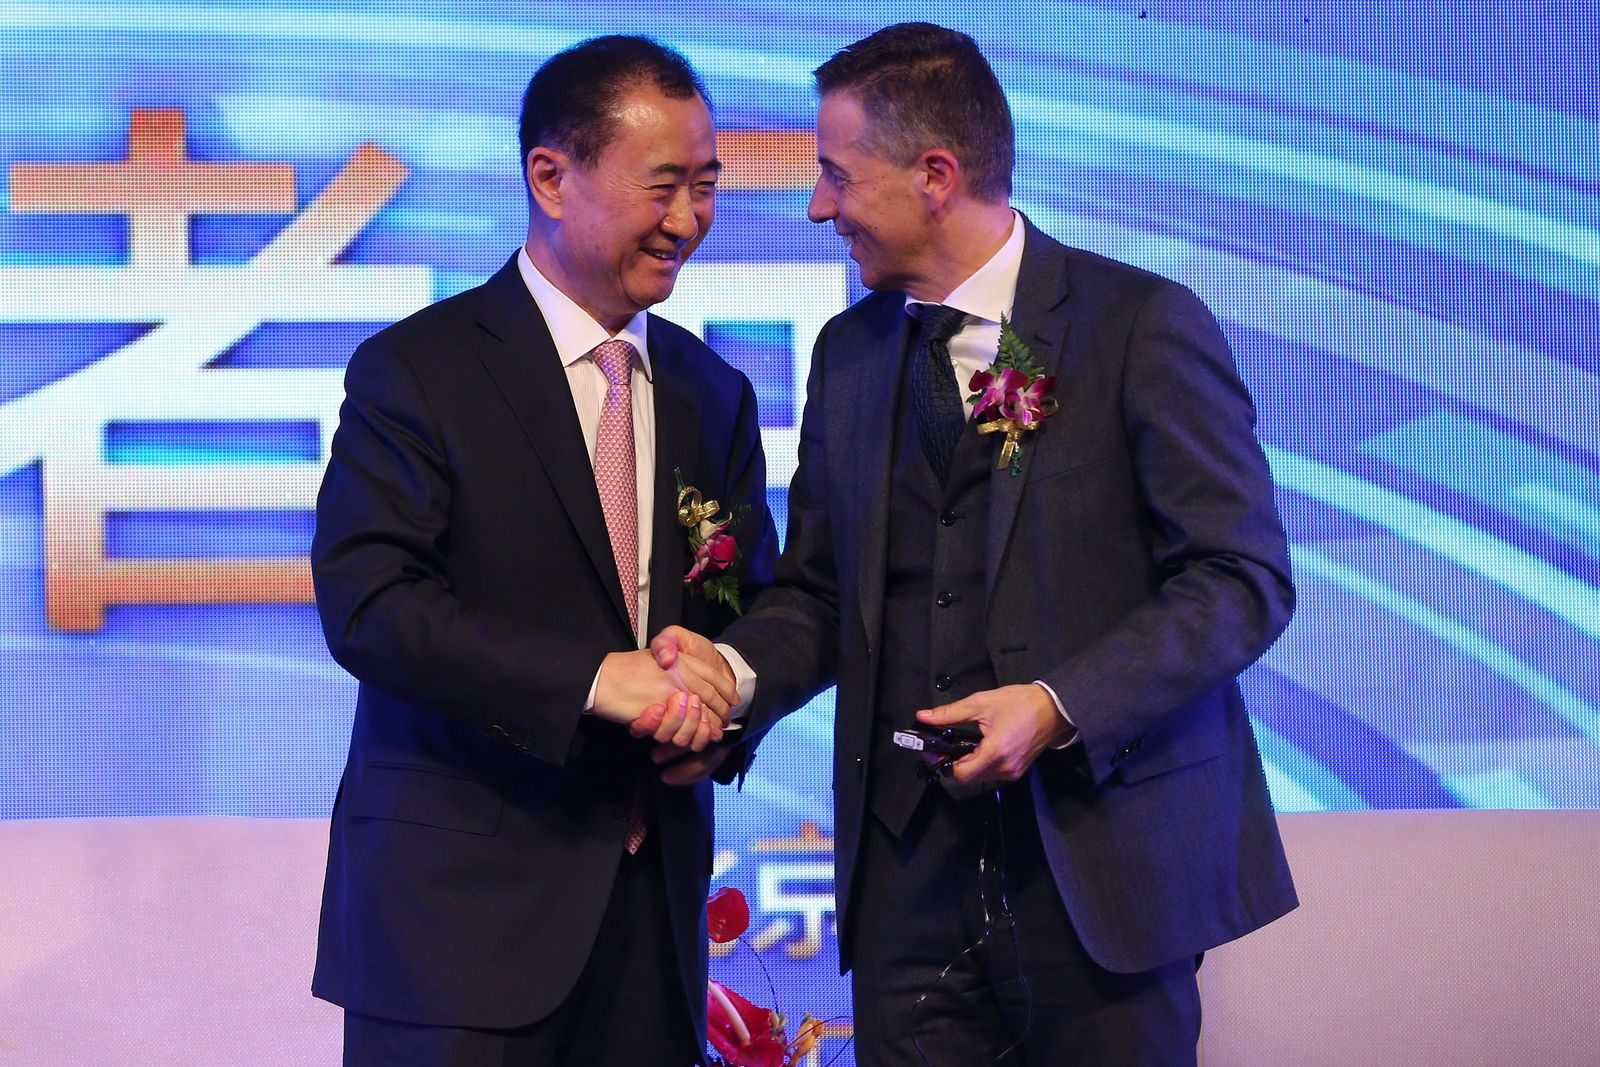 China Wanda Group acquires Infront Sports and Media at 1.05 billi